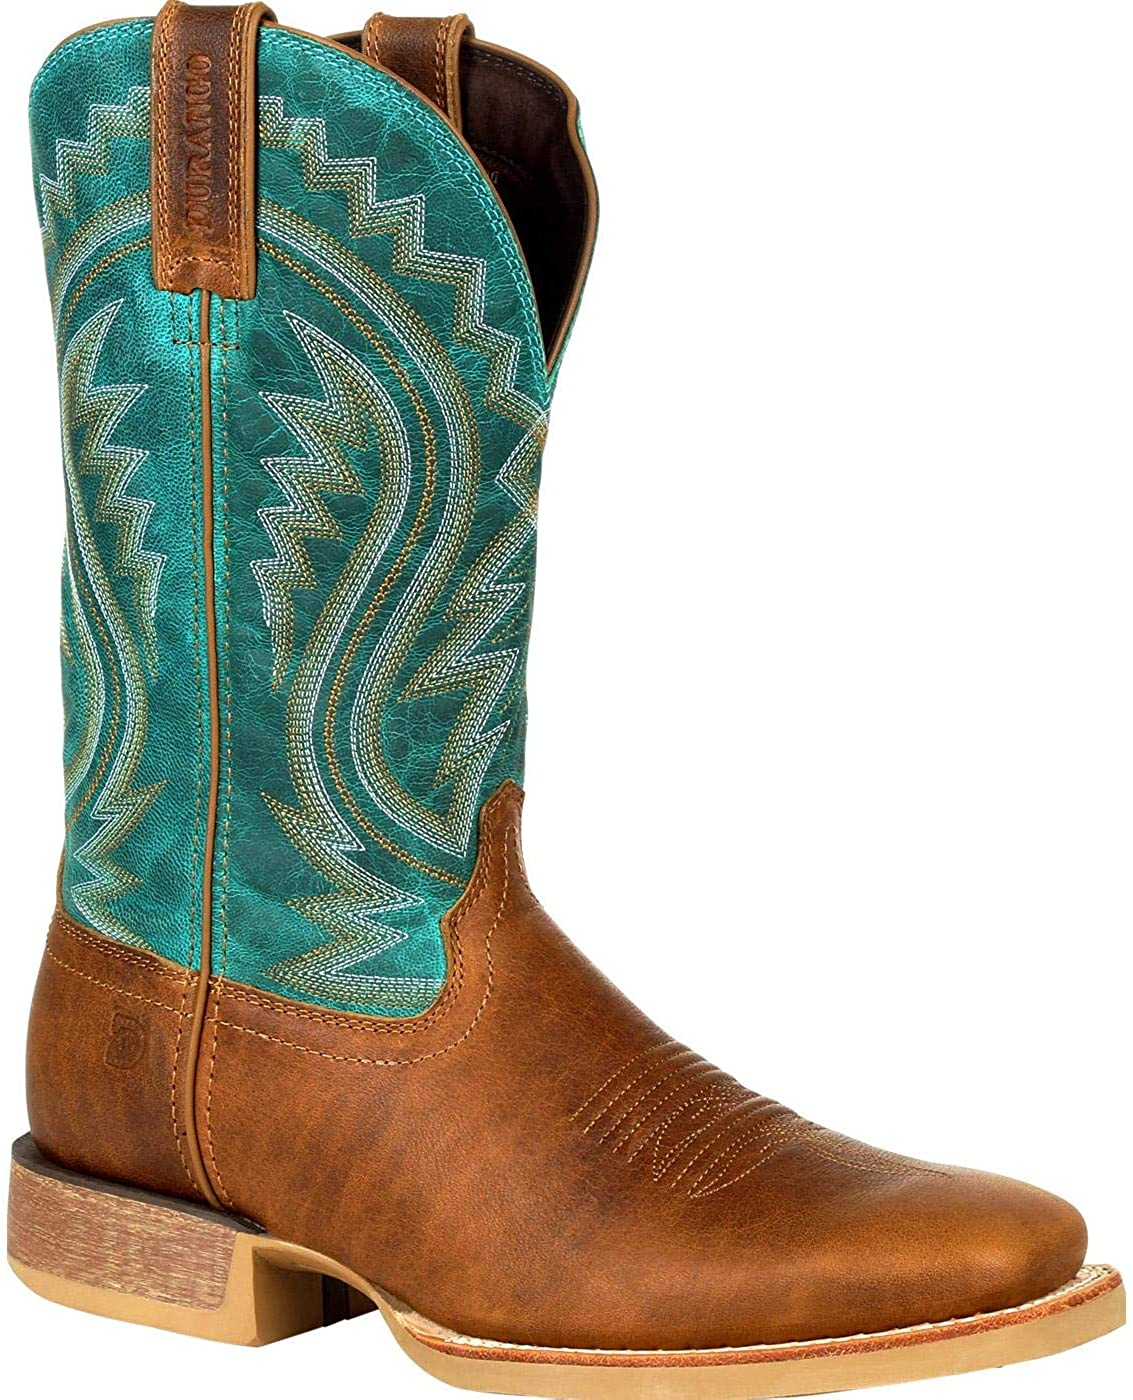 Durango Rebel Pro Sunset Wheat Western Boot Size 10(W)